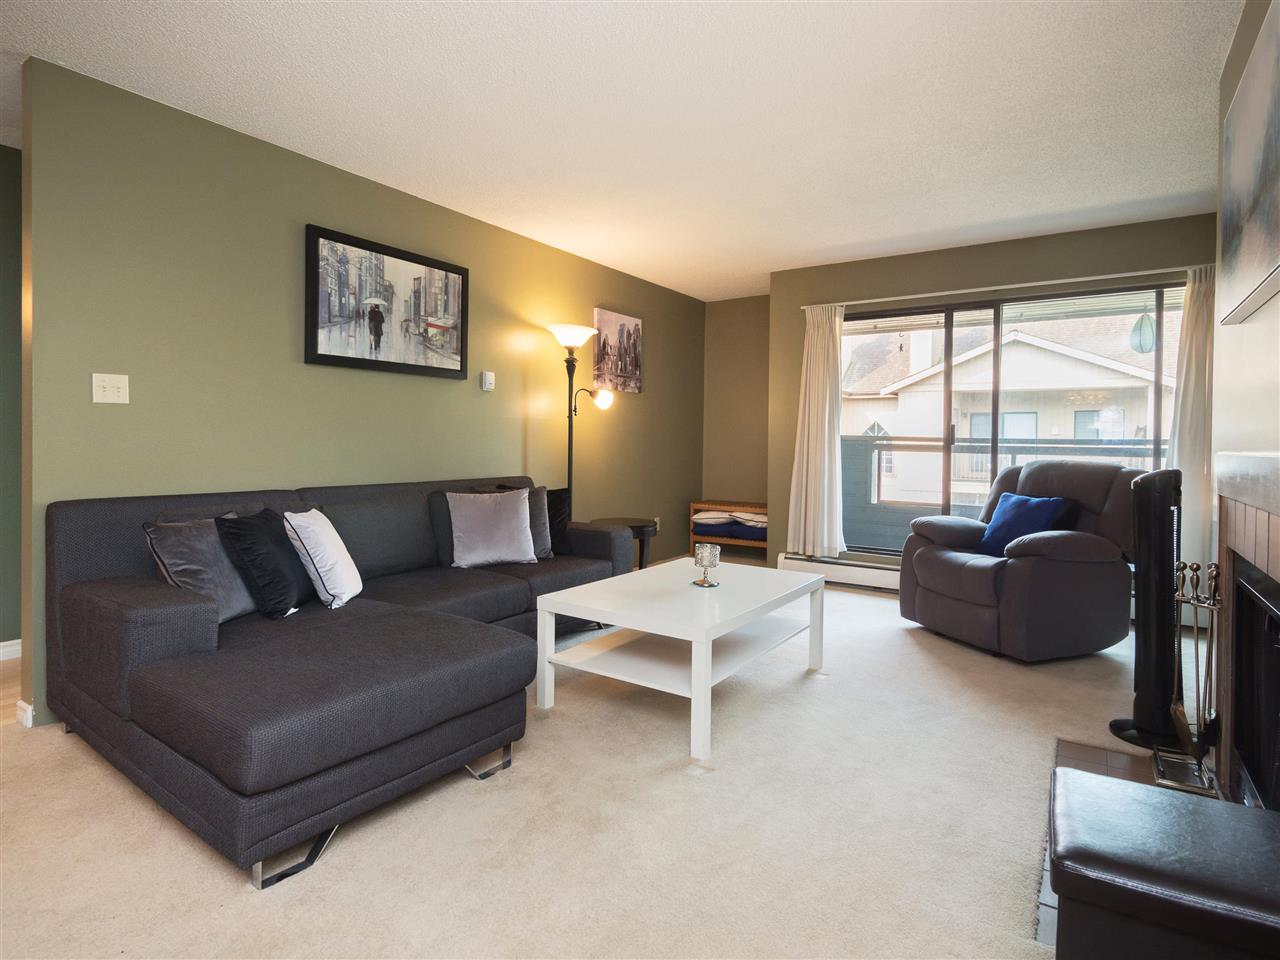 Condo Apartment at 315 8591 WESTMINSTER HIGHWAY, Unit 315, Richmond, British Columbia. Image 1